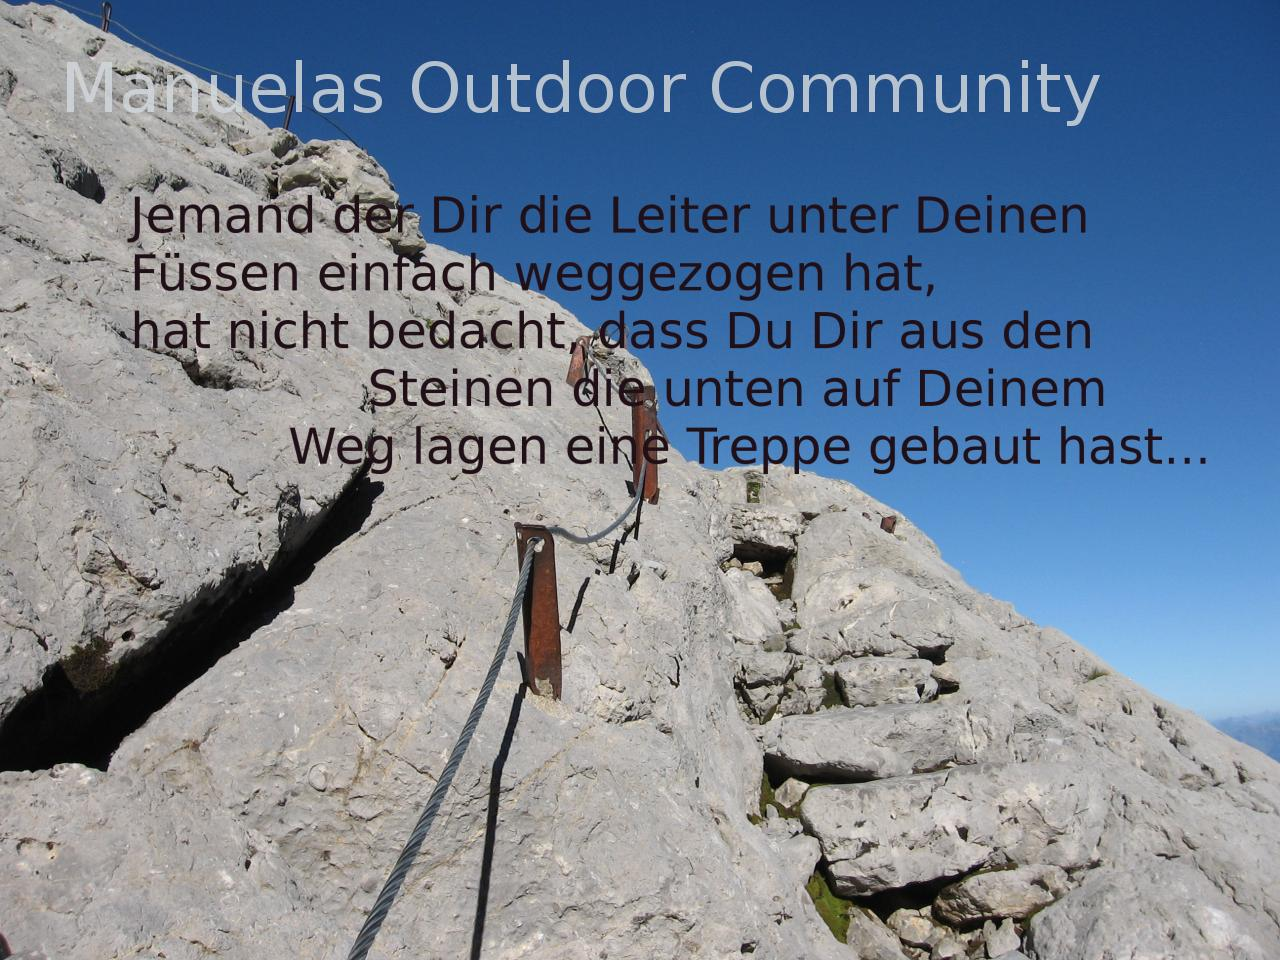 Motivationspruch-Leiter.jpg